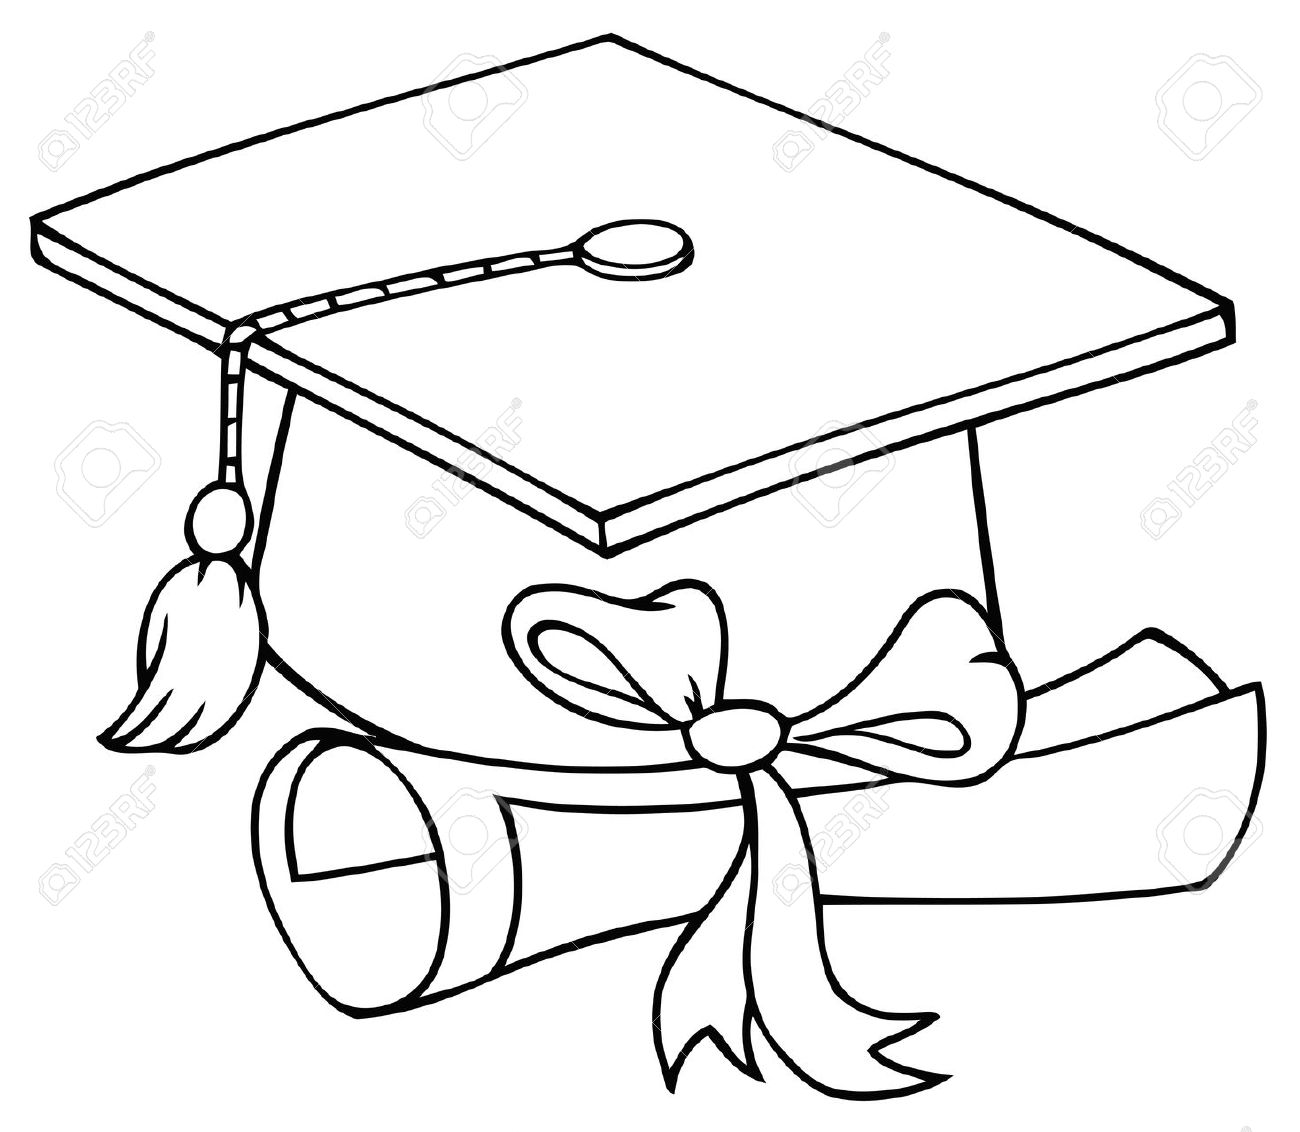 Graduation gown coloring page [ Kindergarten graduation coloring page. Graduation cap coloring page. Graduation gown coloring page. This Resolution and file ...